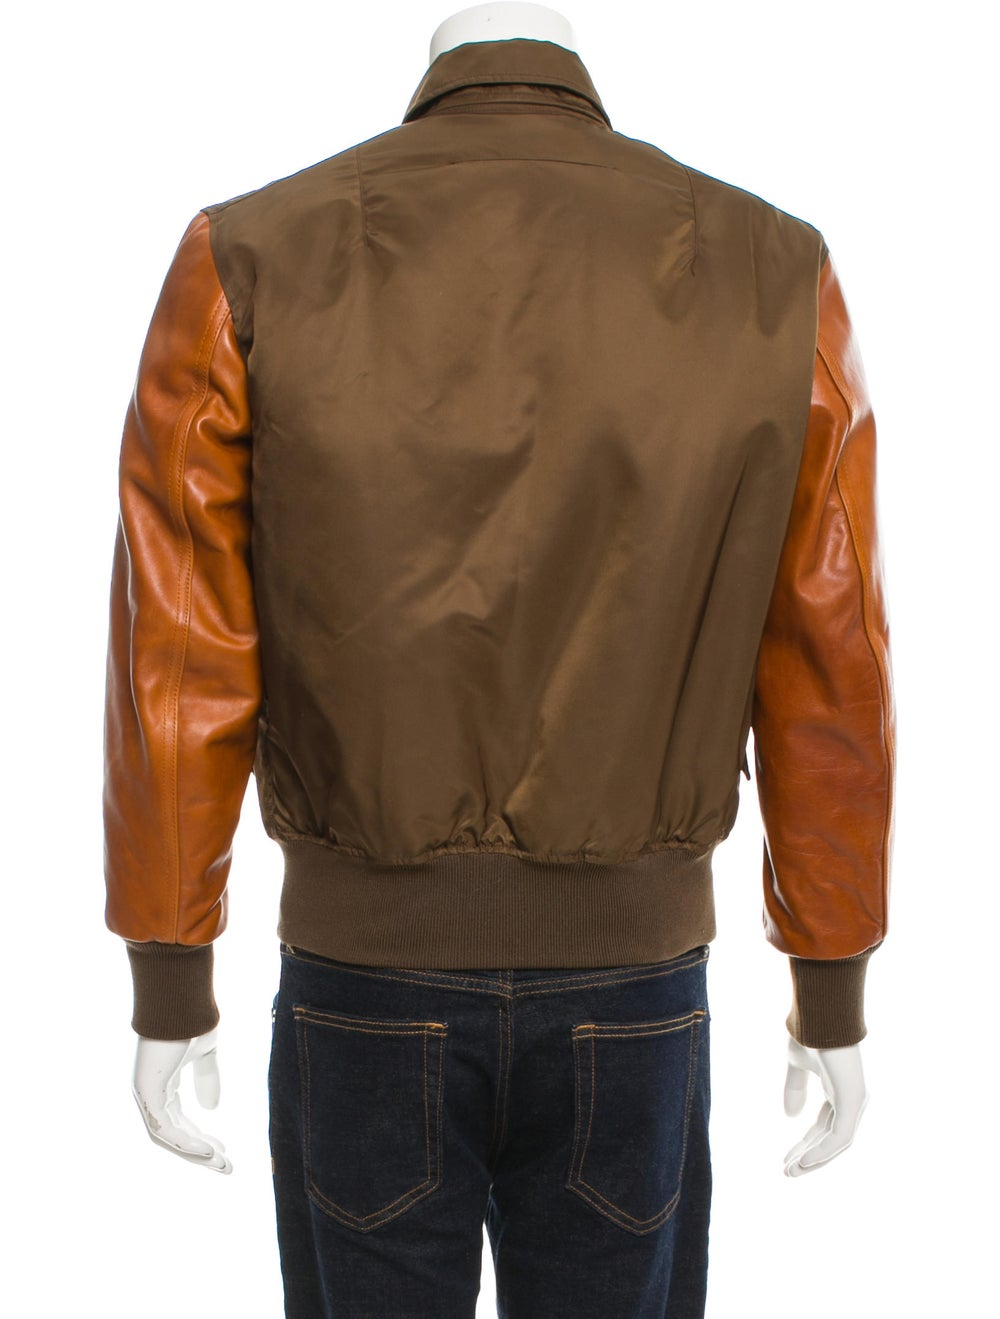 Givenchy Leather-Trimmed Flight Jacket olive - image 3